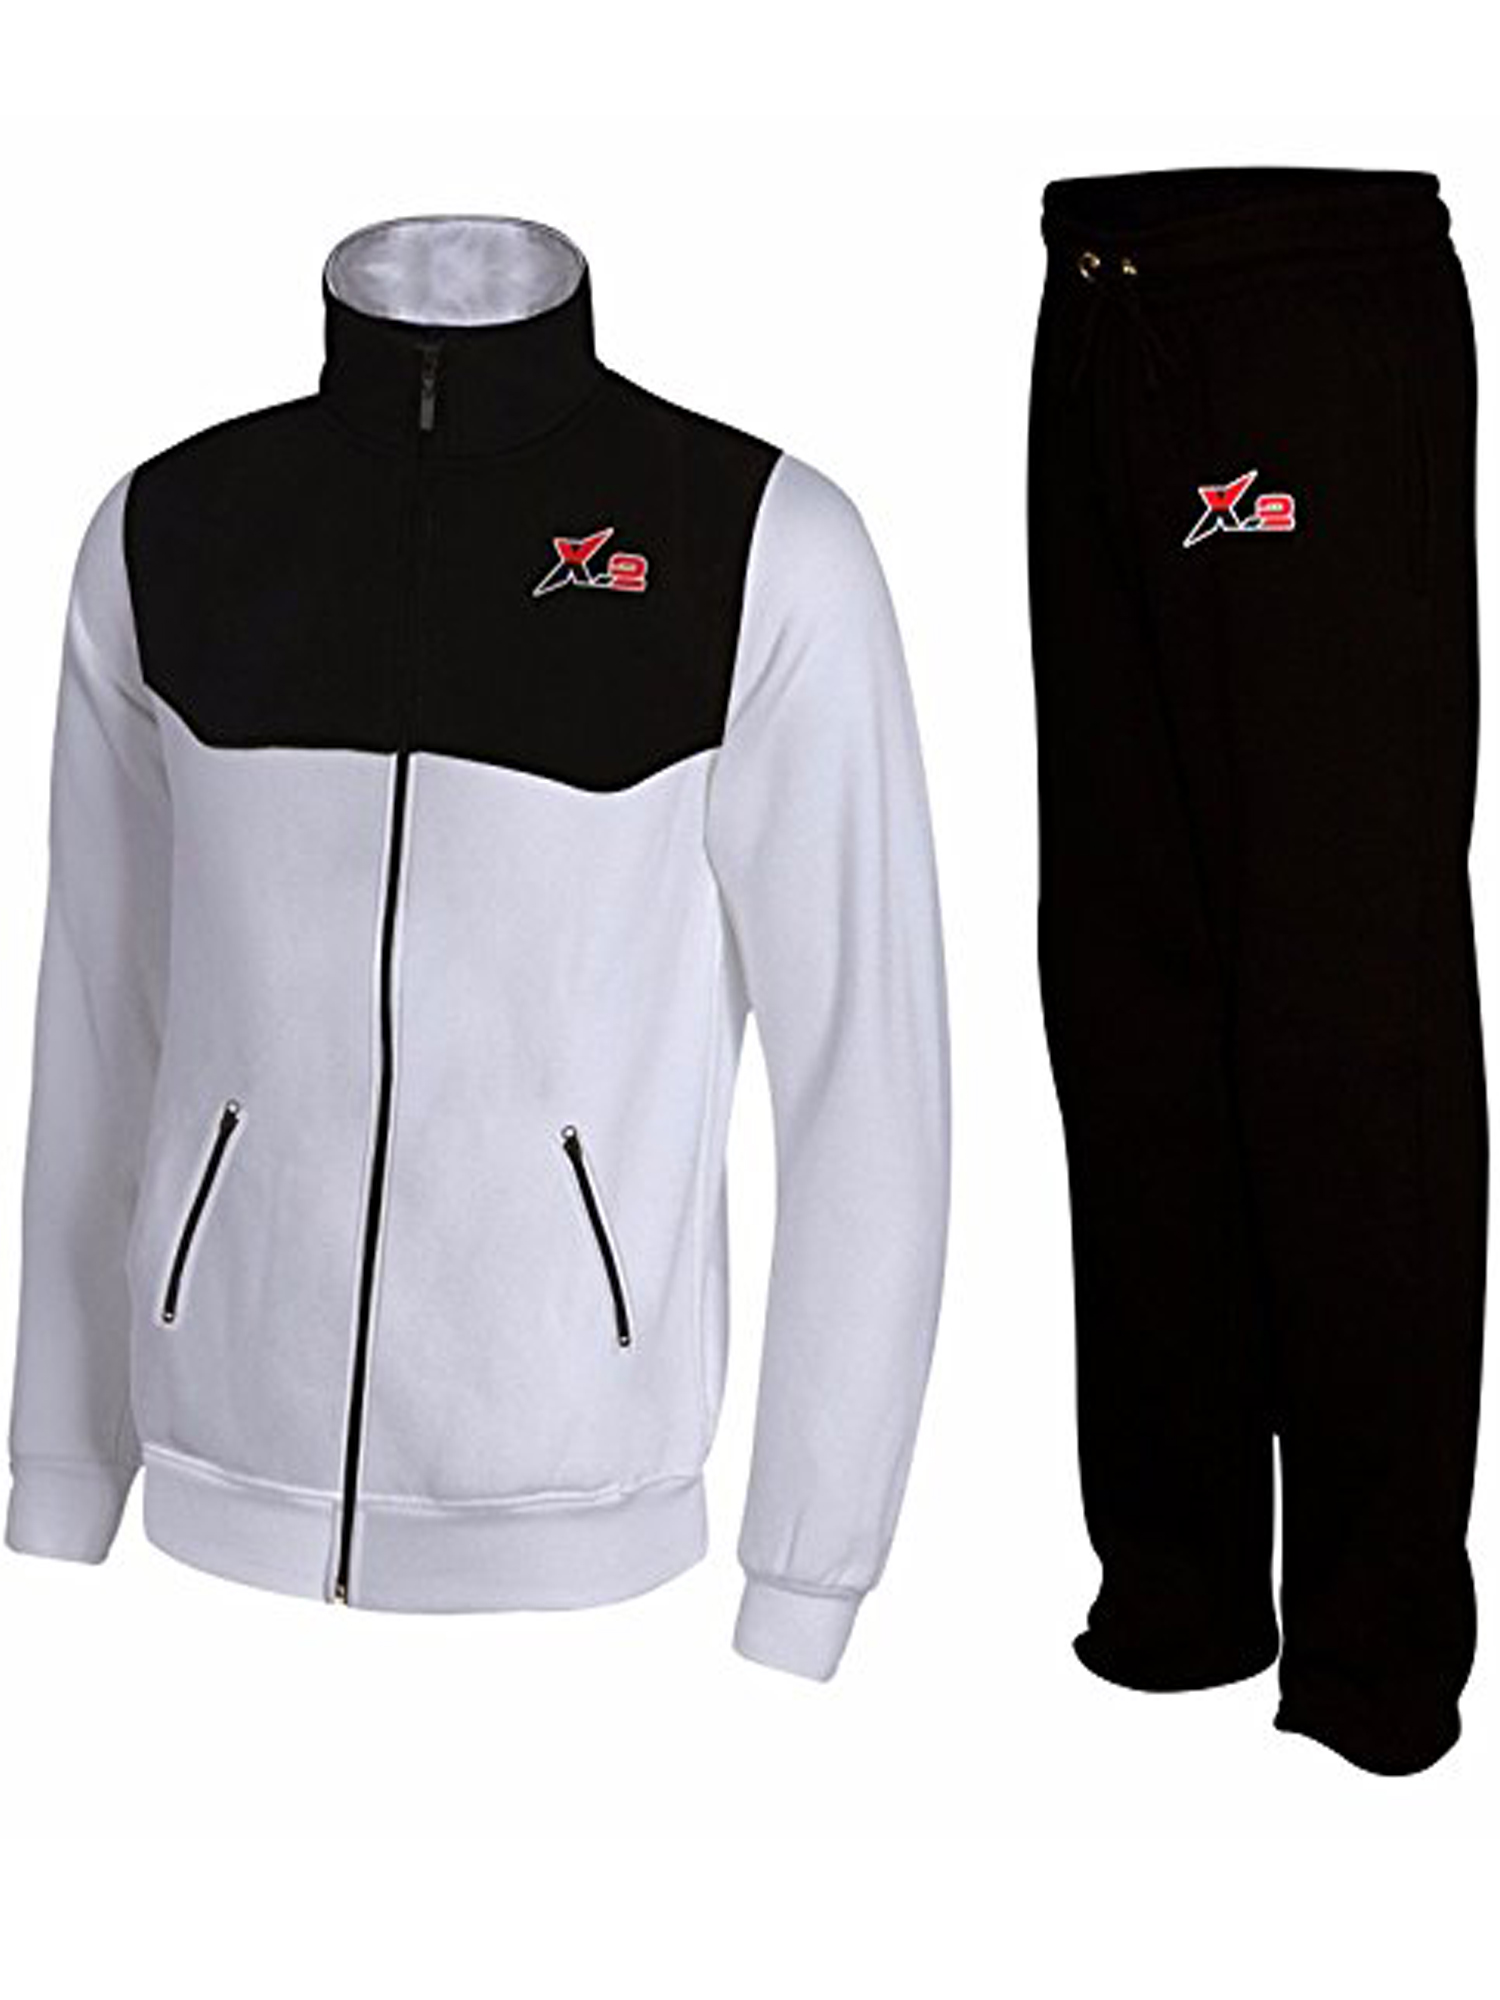 X-2 Mens Athletic Activewear Full Zip Fleece Tracksuit Jogging Sweatsuit